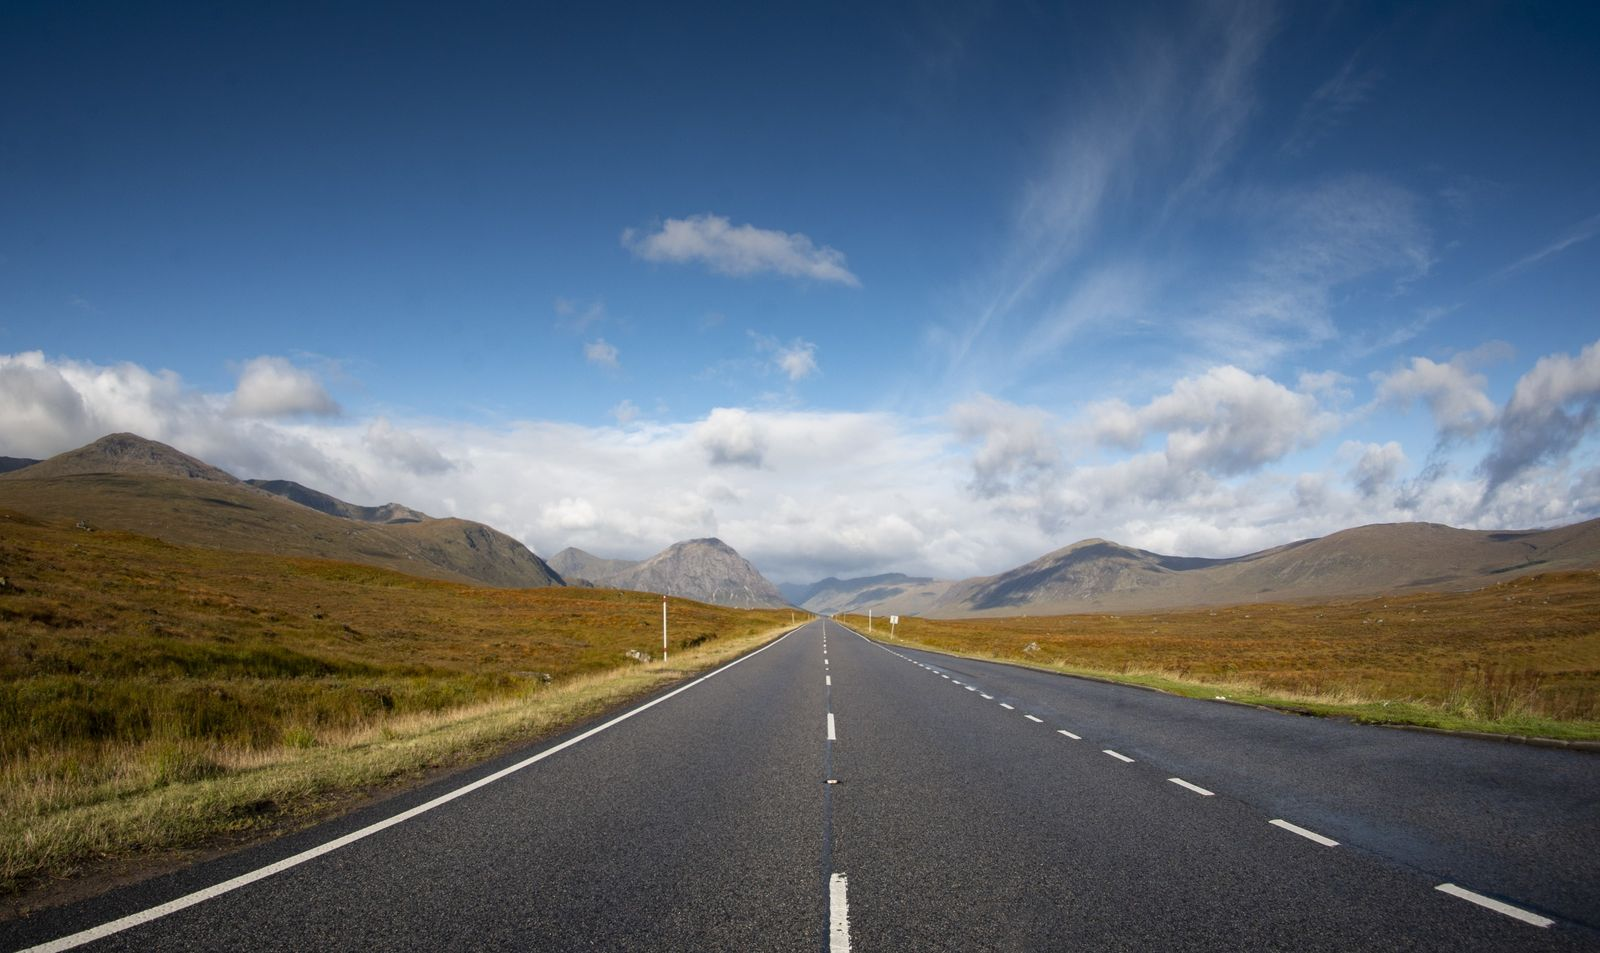 These days, there is a fine road that travels the West Highlands towards Fort William. In ...